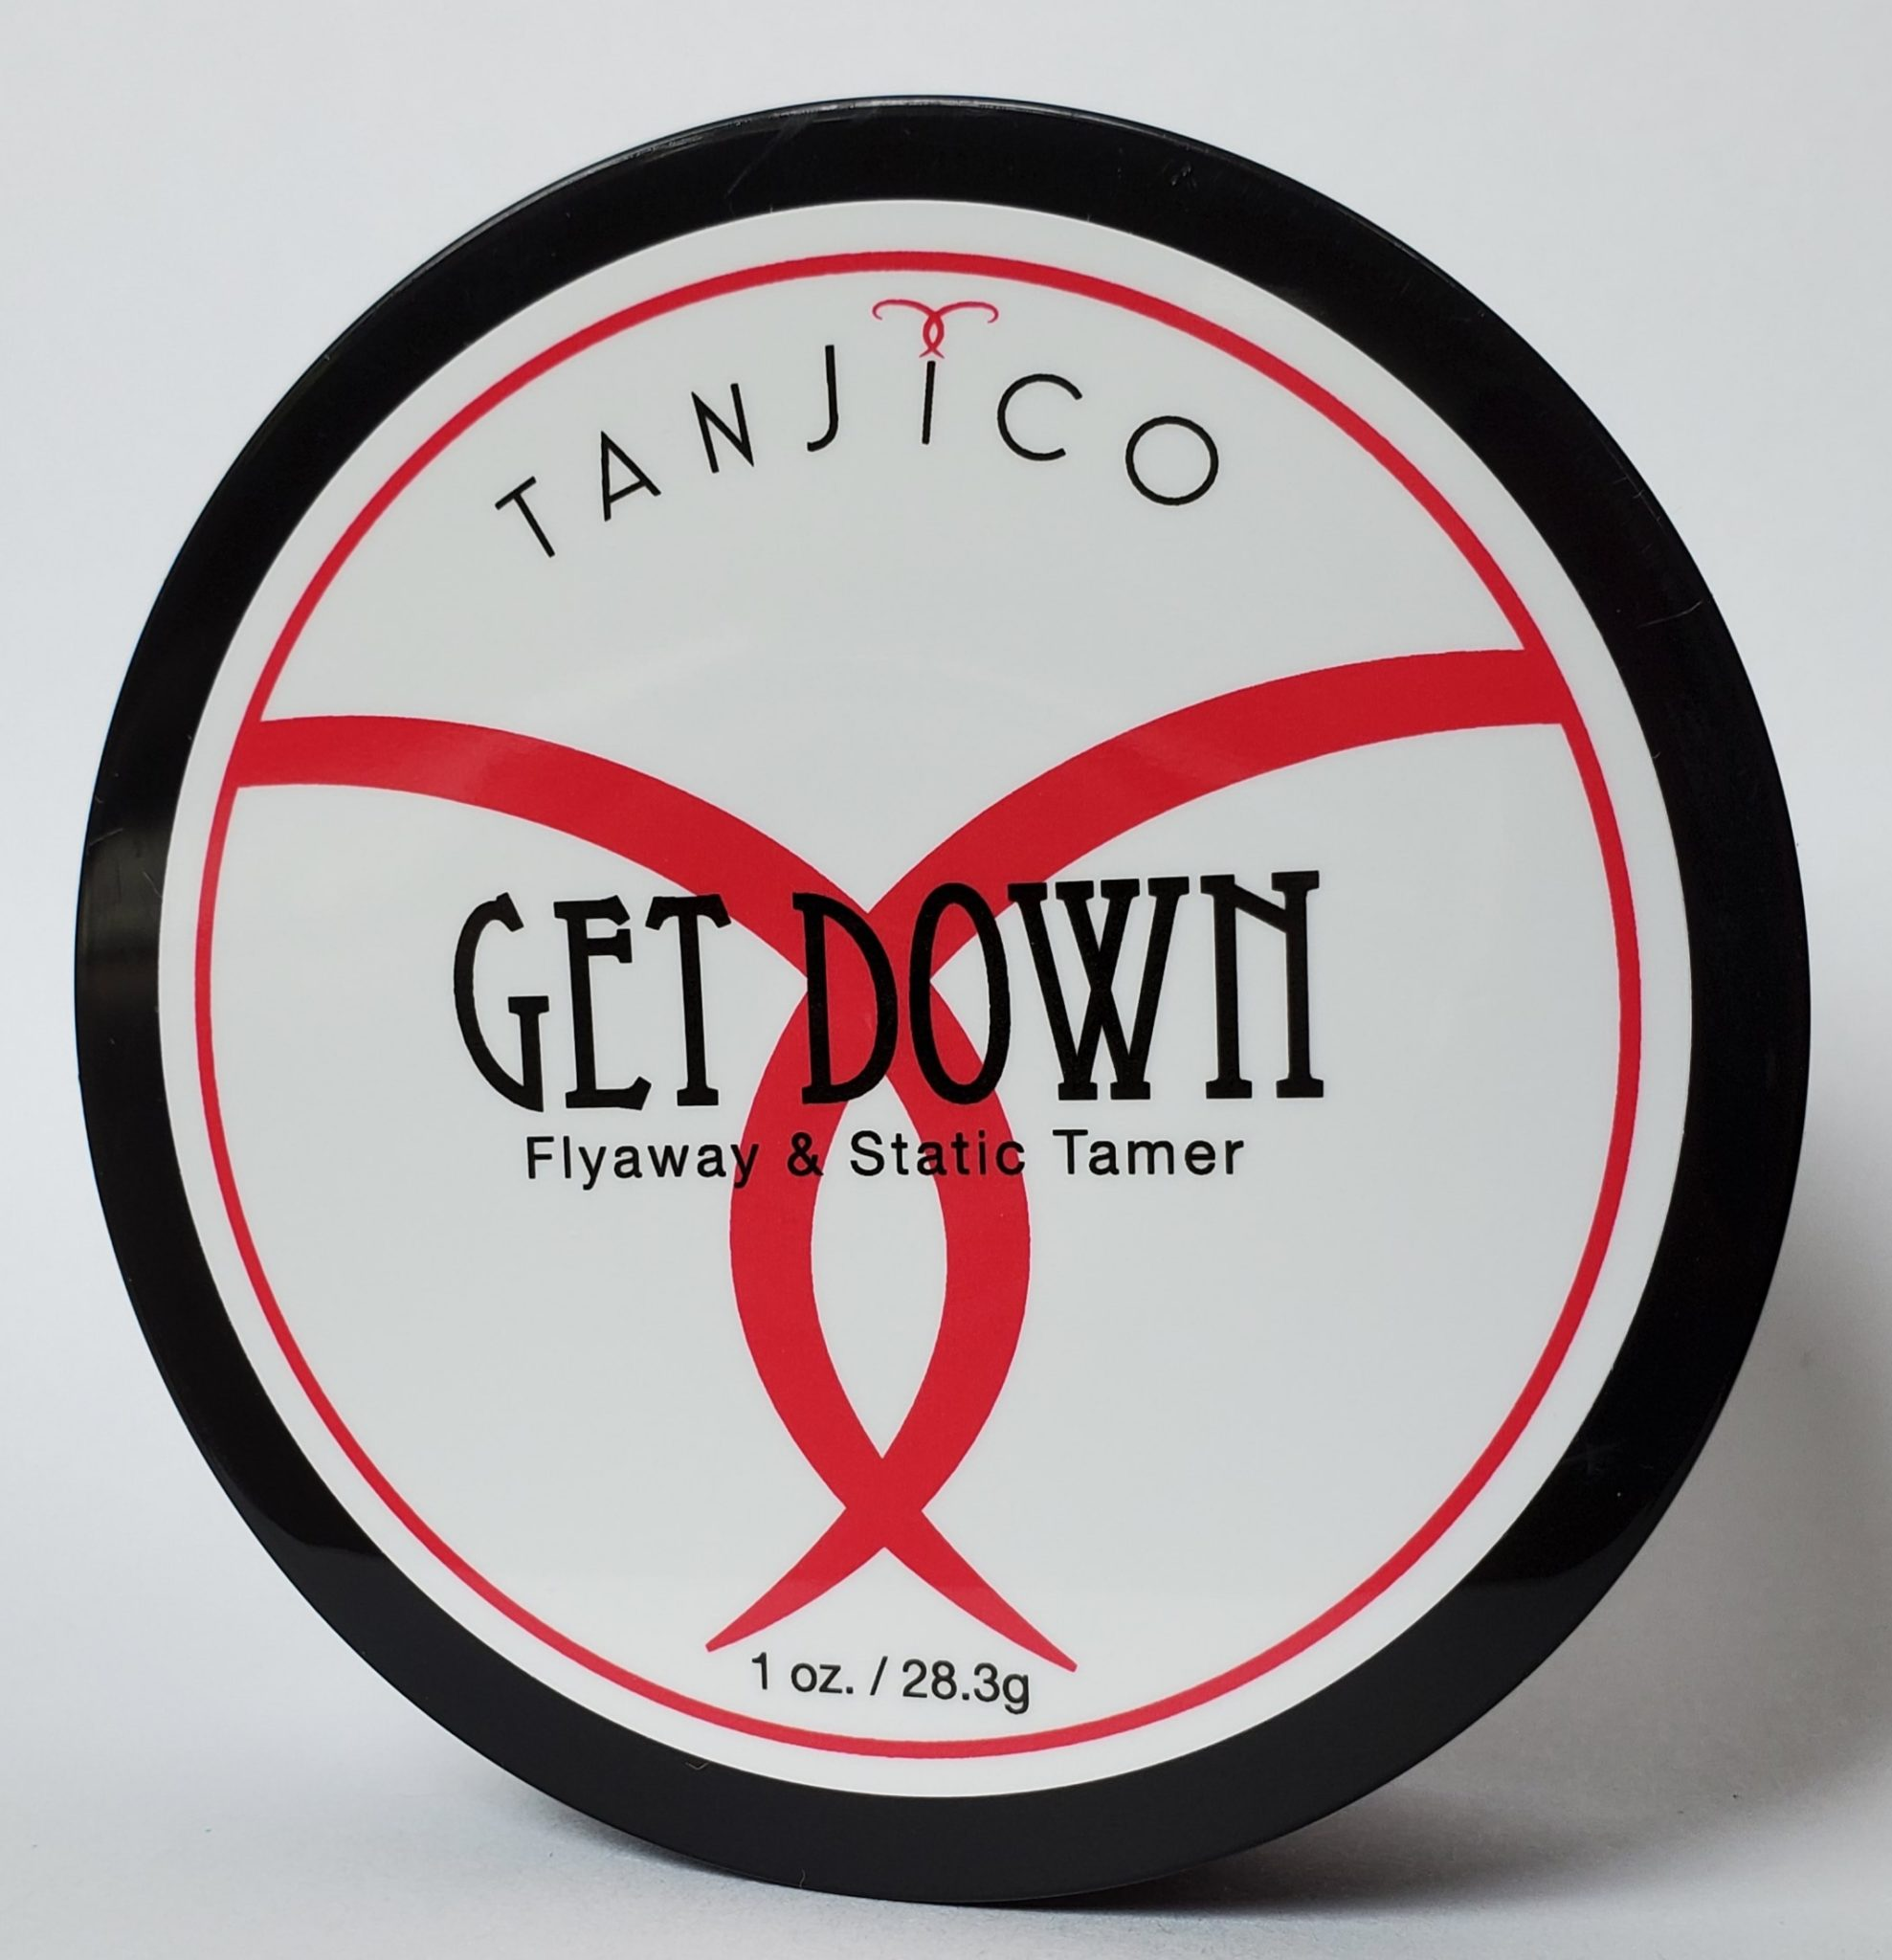 Get Down Tanjico New York